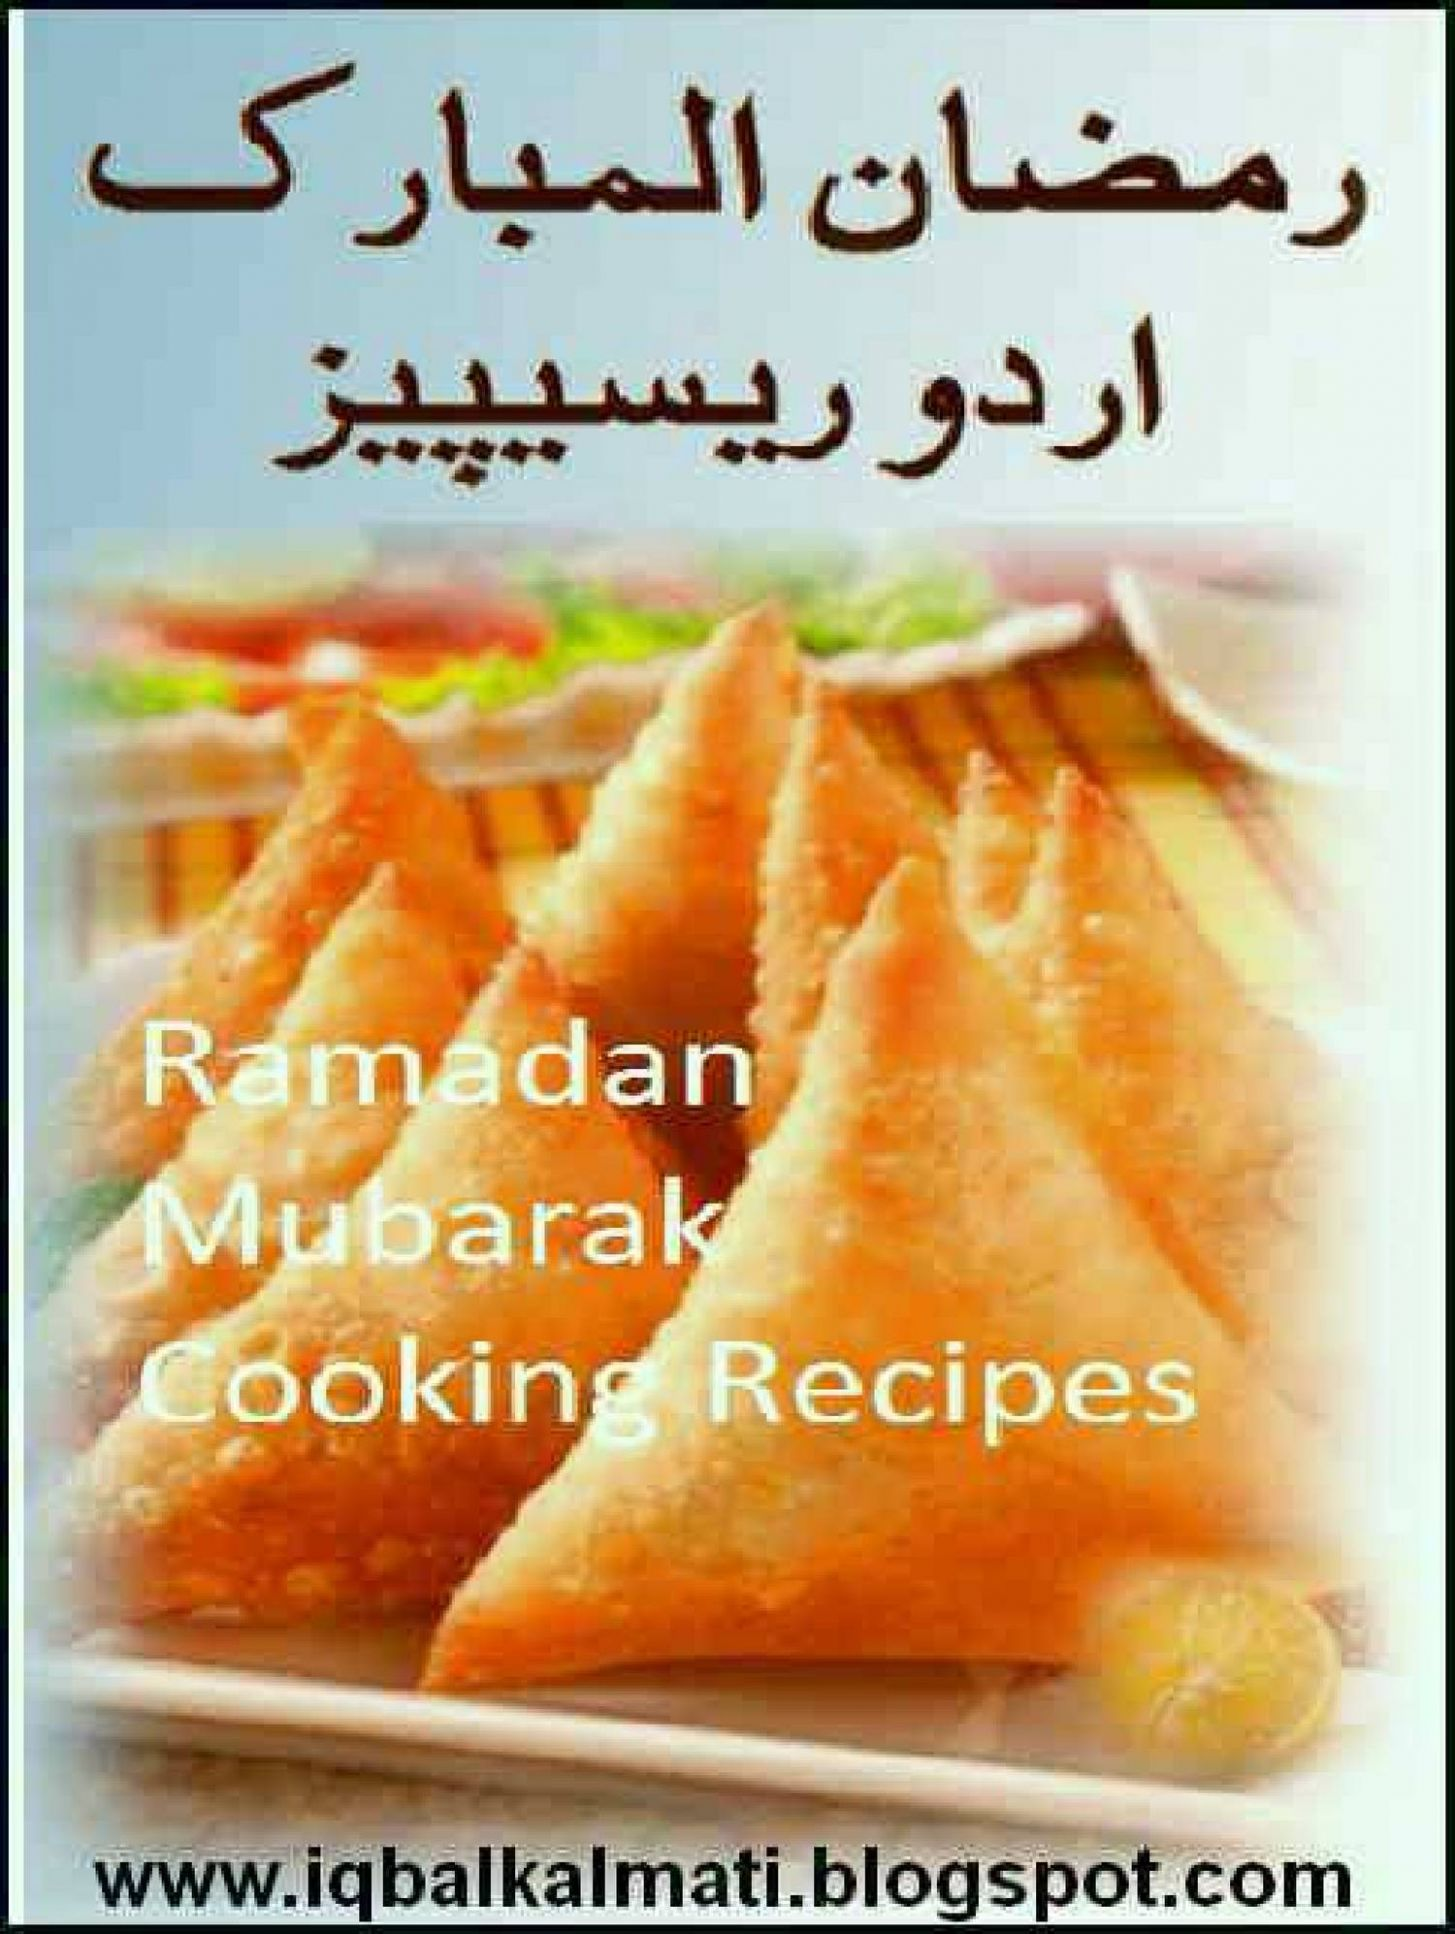 Urdu recipe books pdf